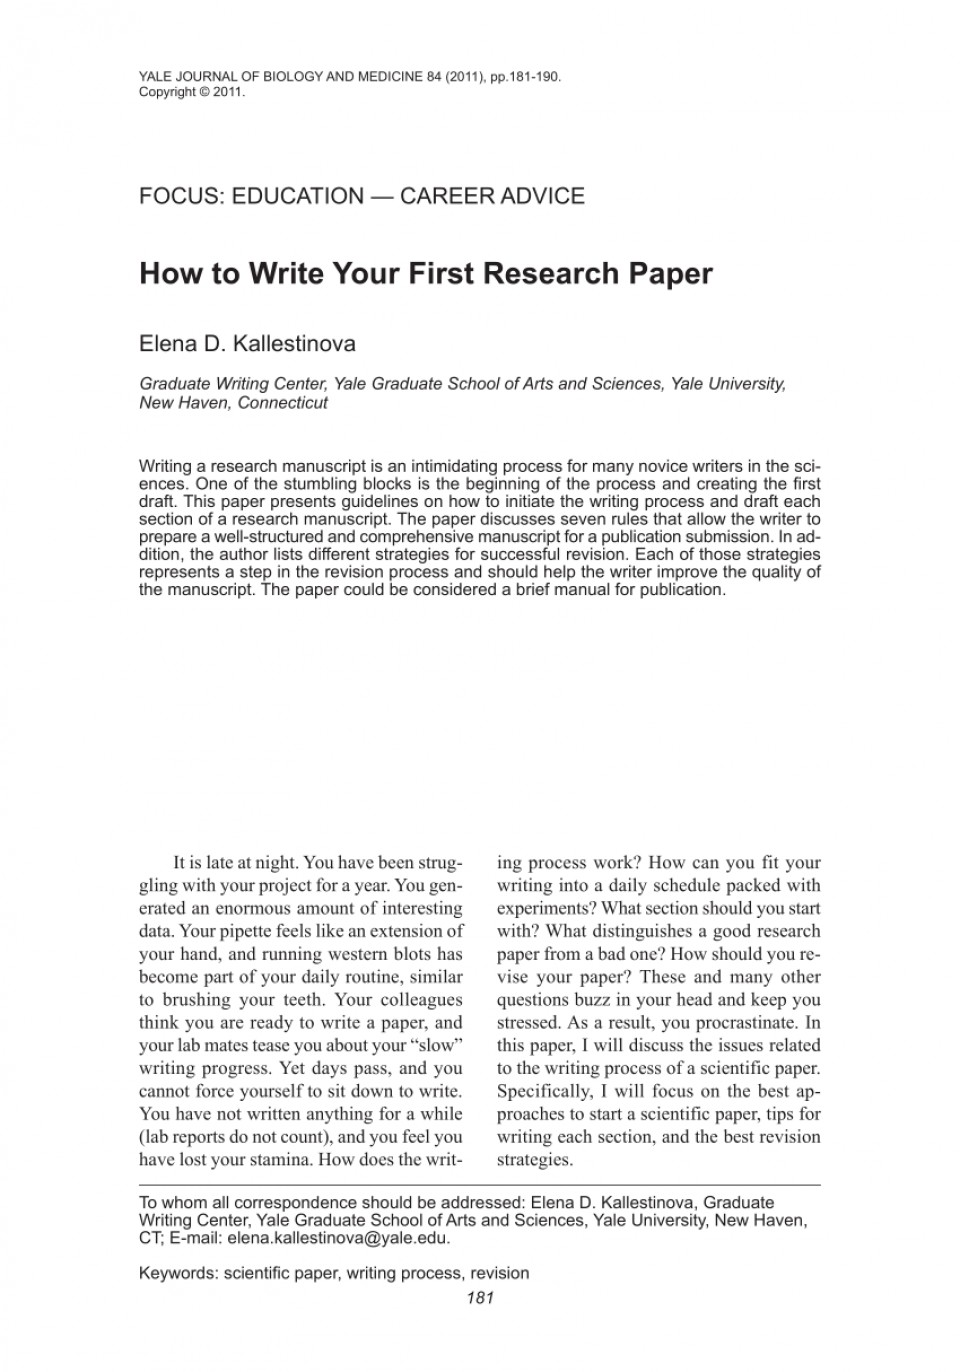 003 How To Write Research Paper Frightening A In Apa Format Sample Outline Owl Purdue Good Abstract 960